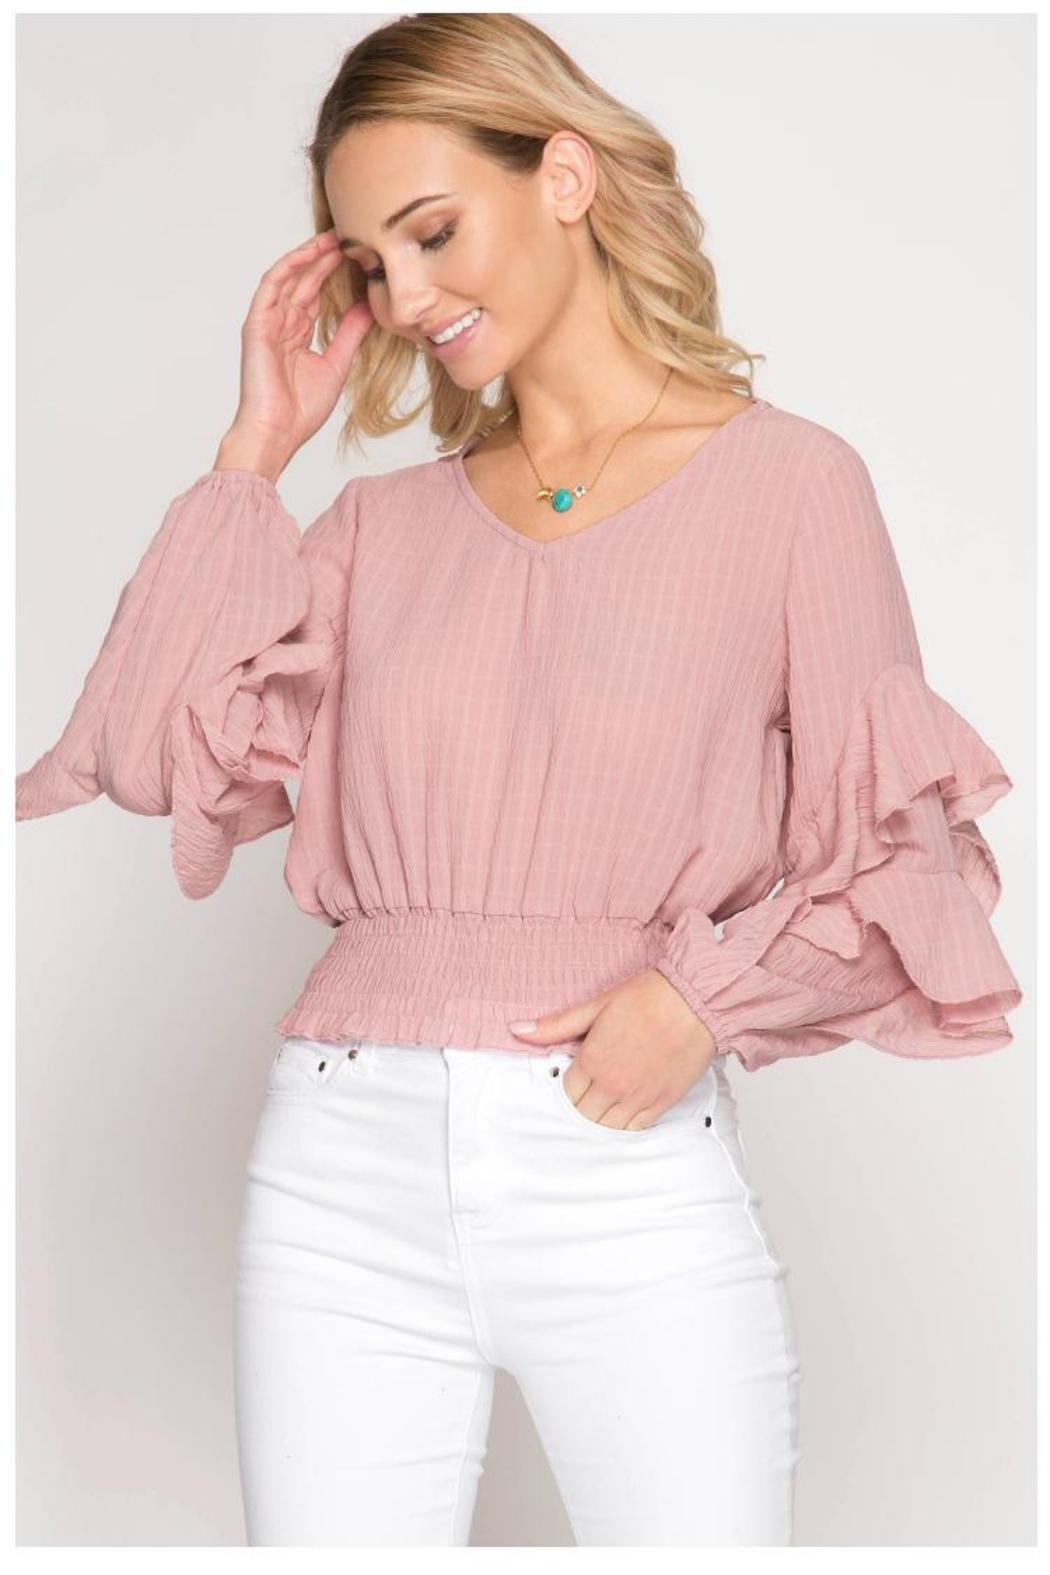 She + Sky Blush Ruffle Top - Main Image